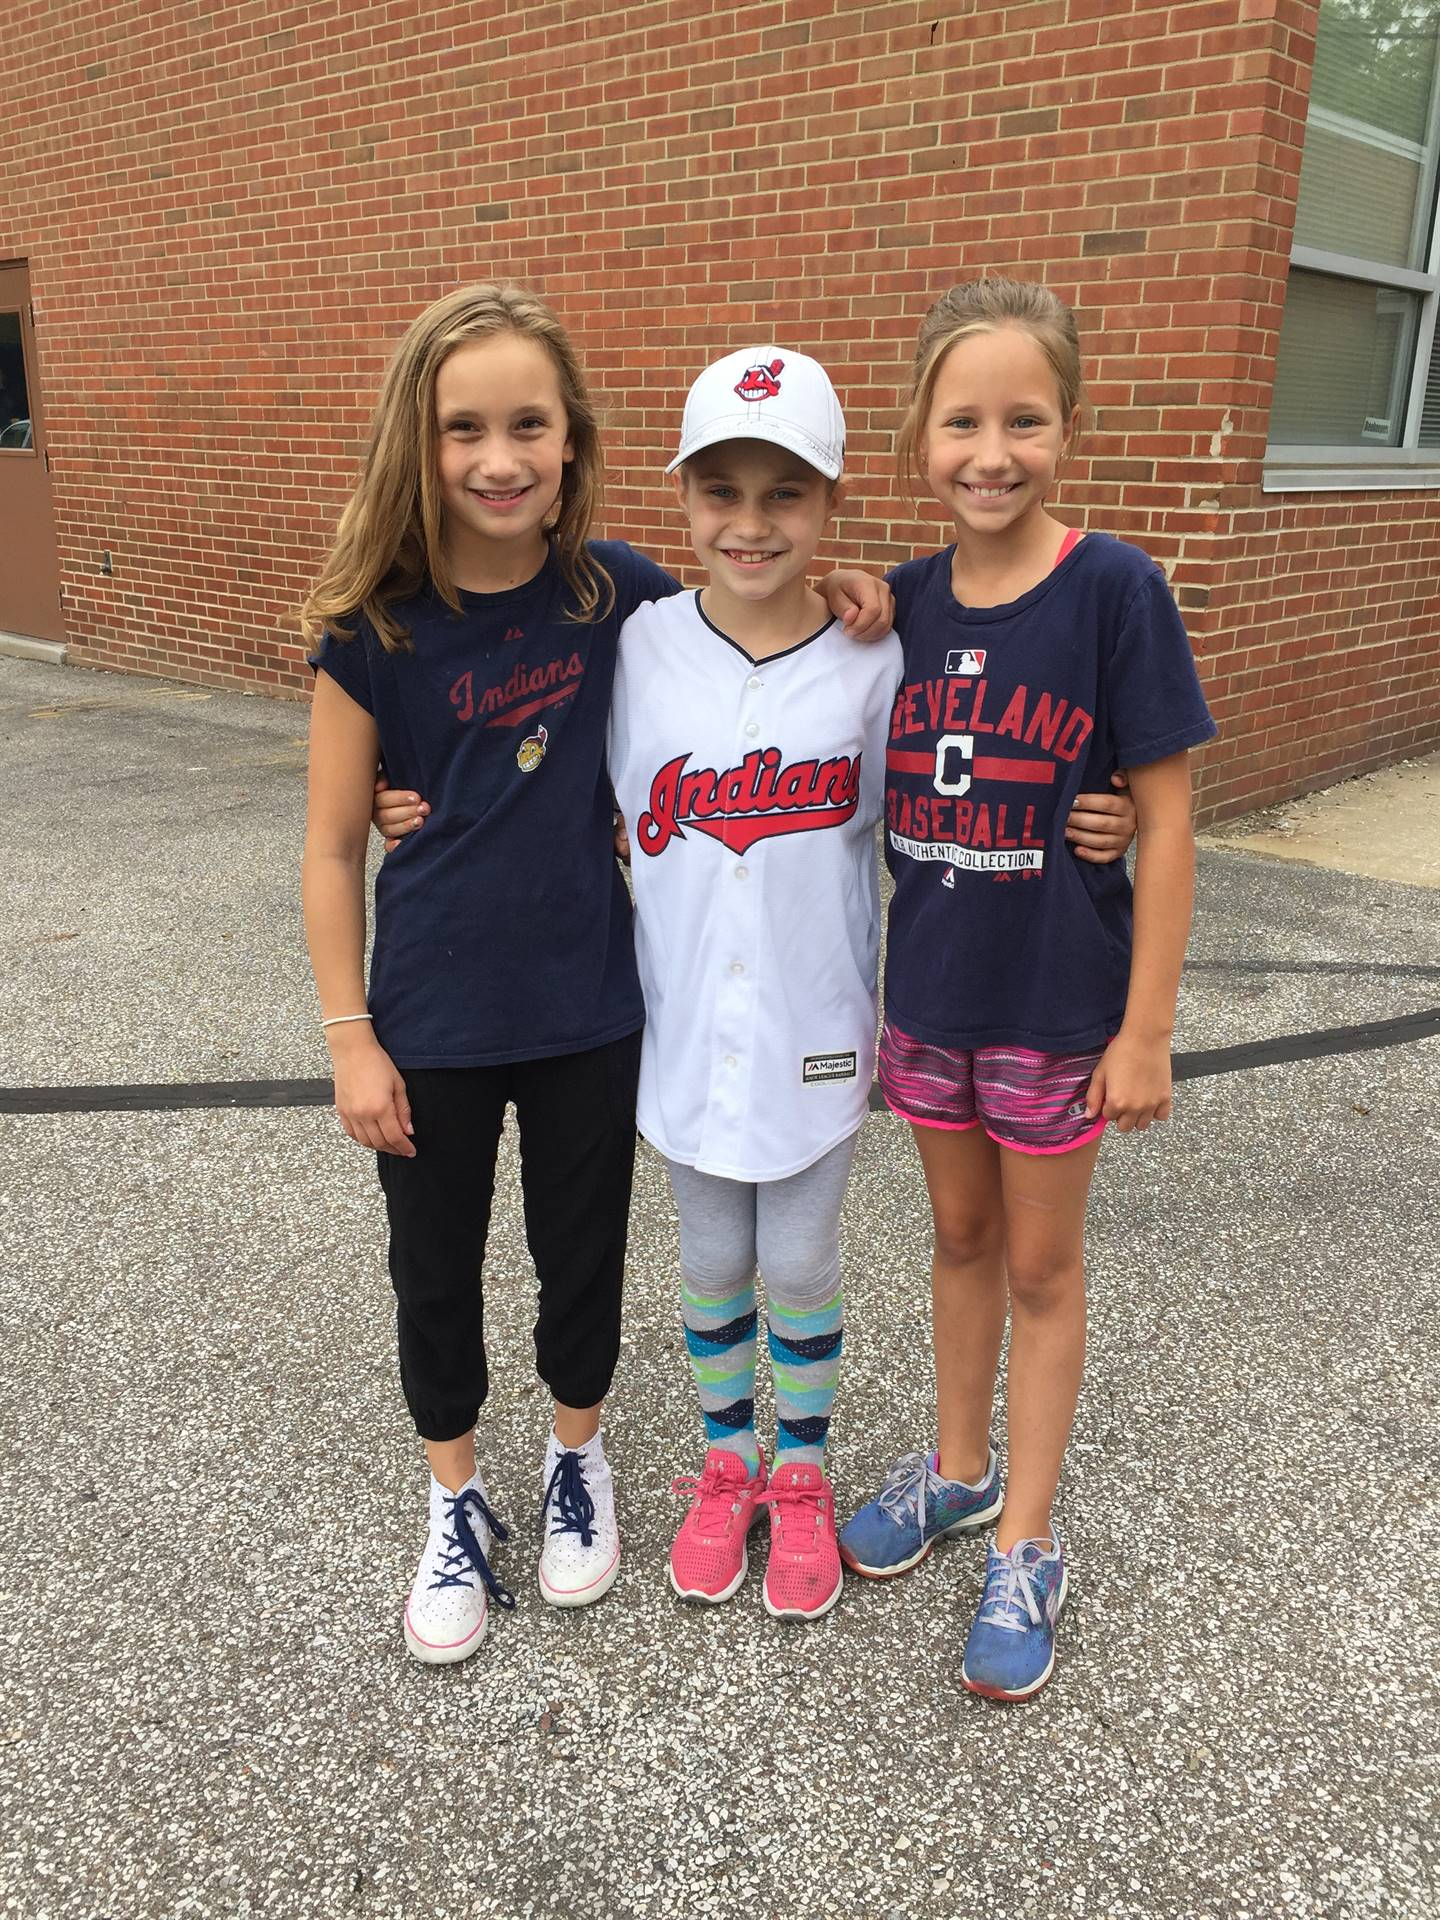 Girls wearing Indians shirts